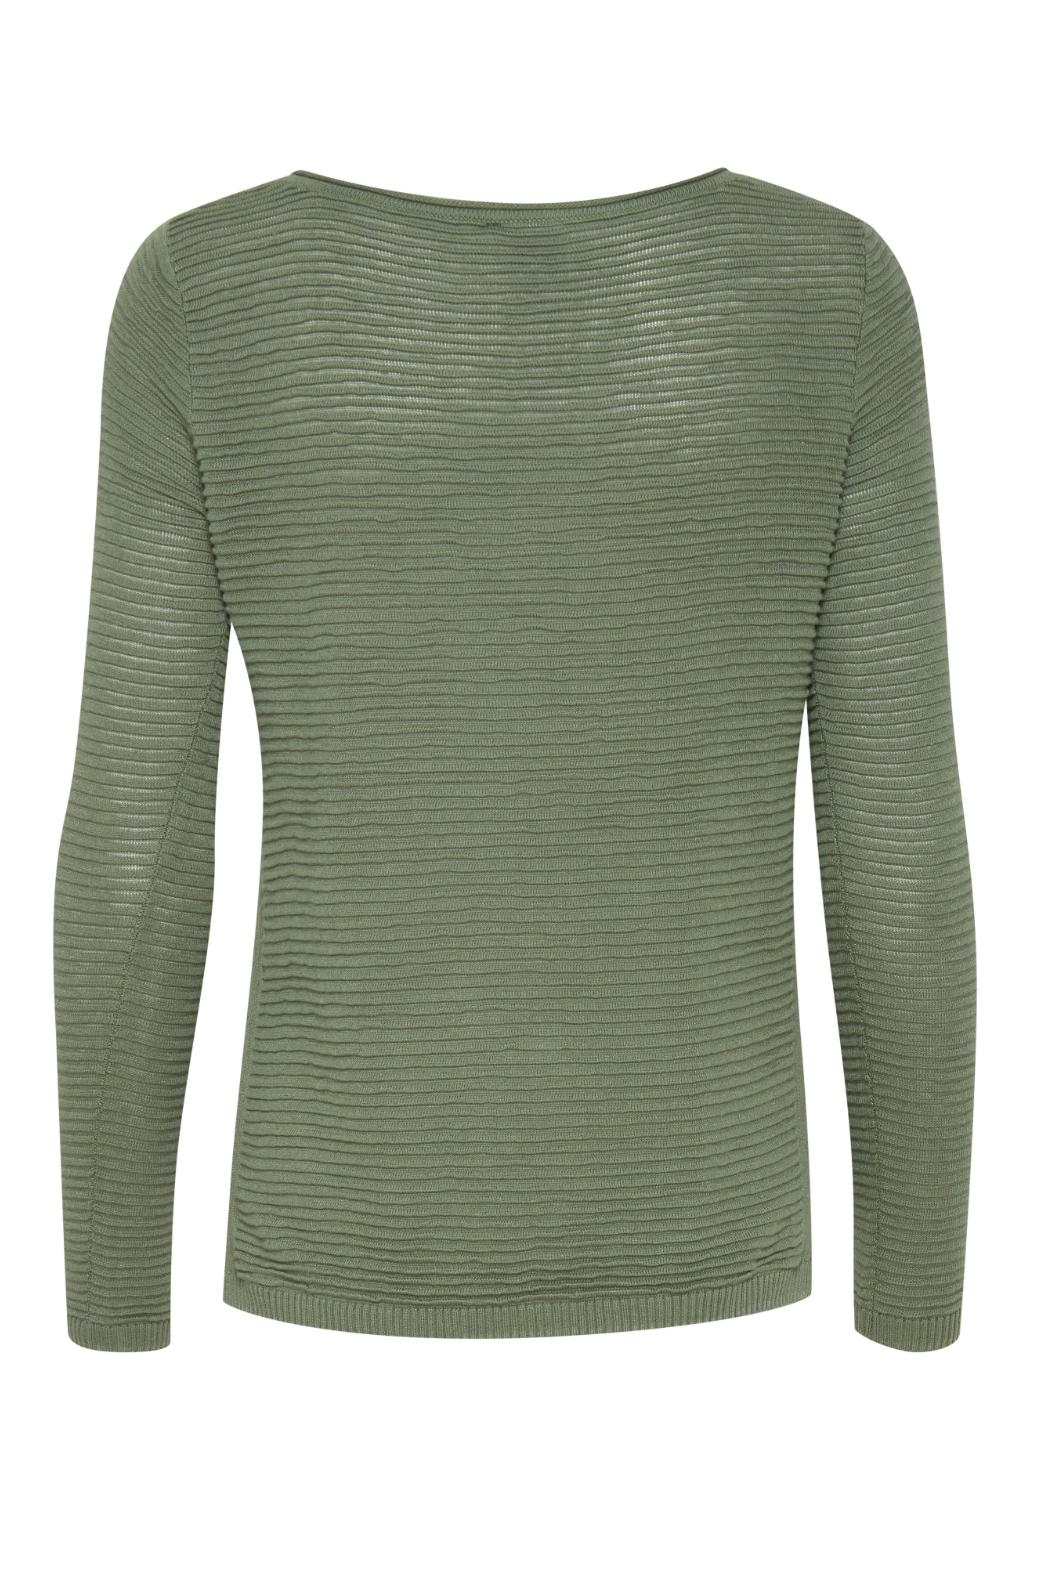 ICHI Green Knit Sweater - Front Full Image